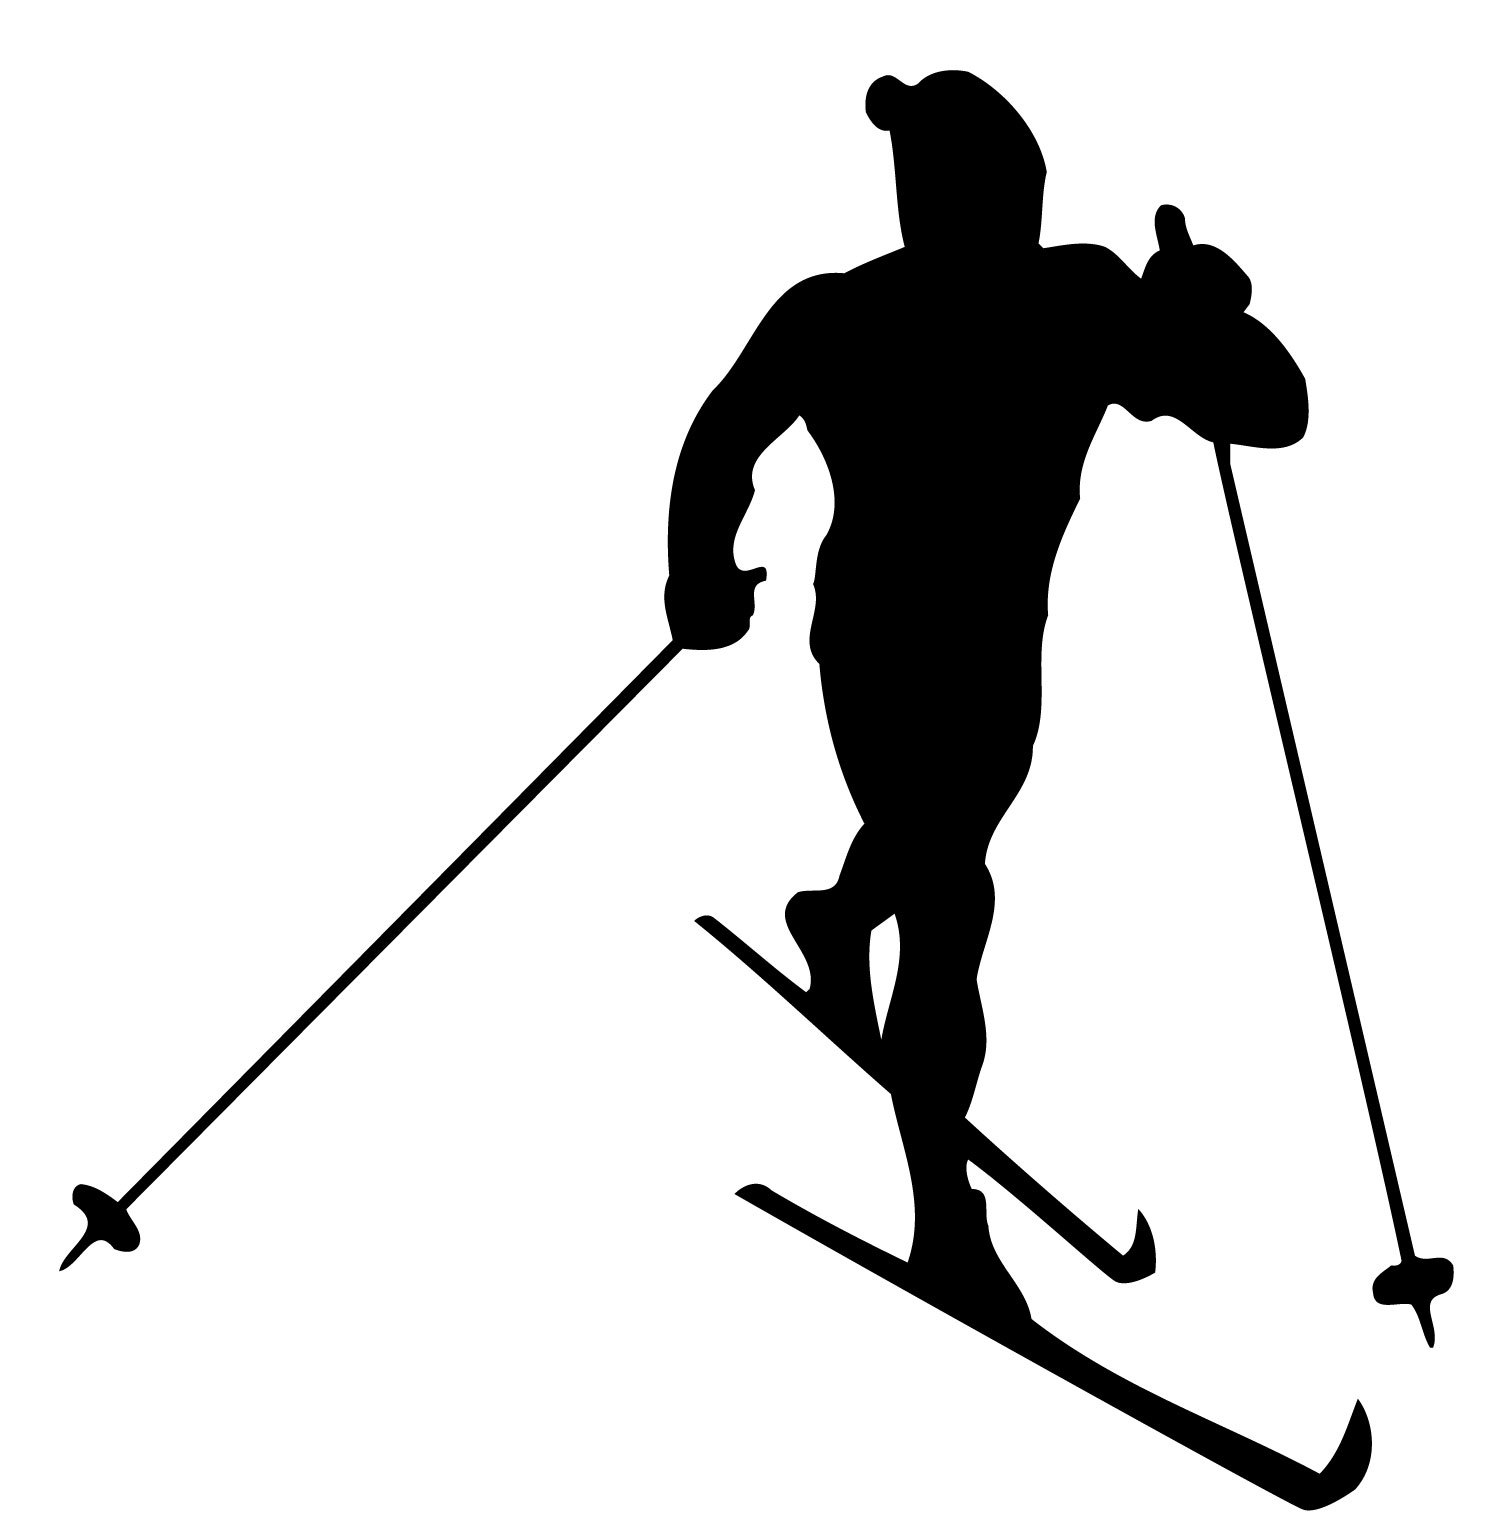 Free clipart cross country skiing.